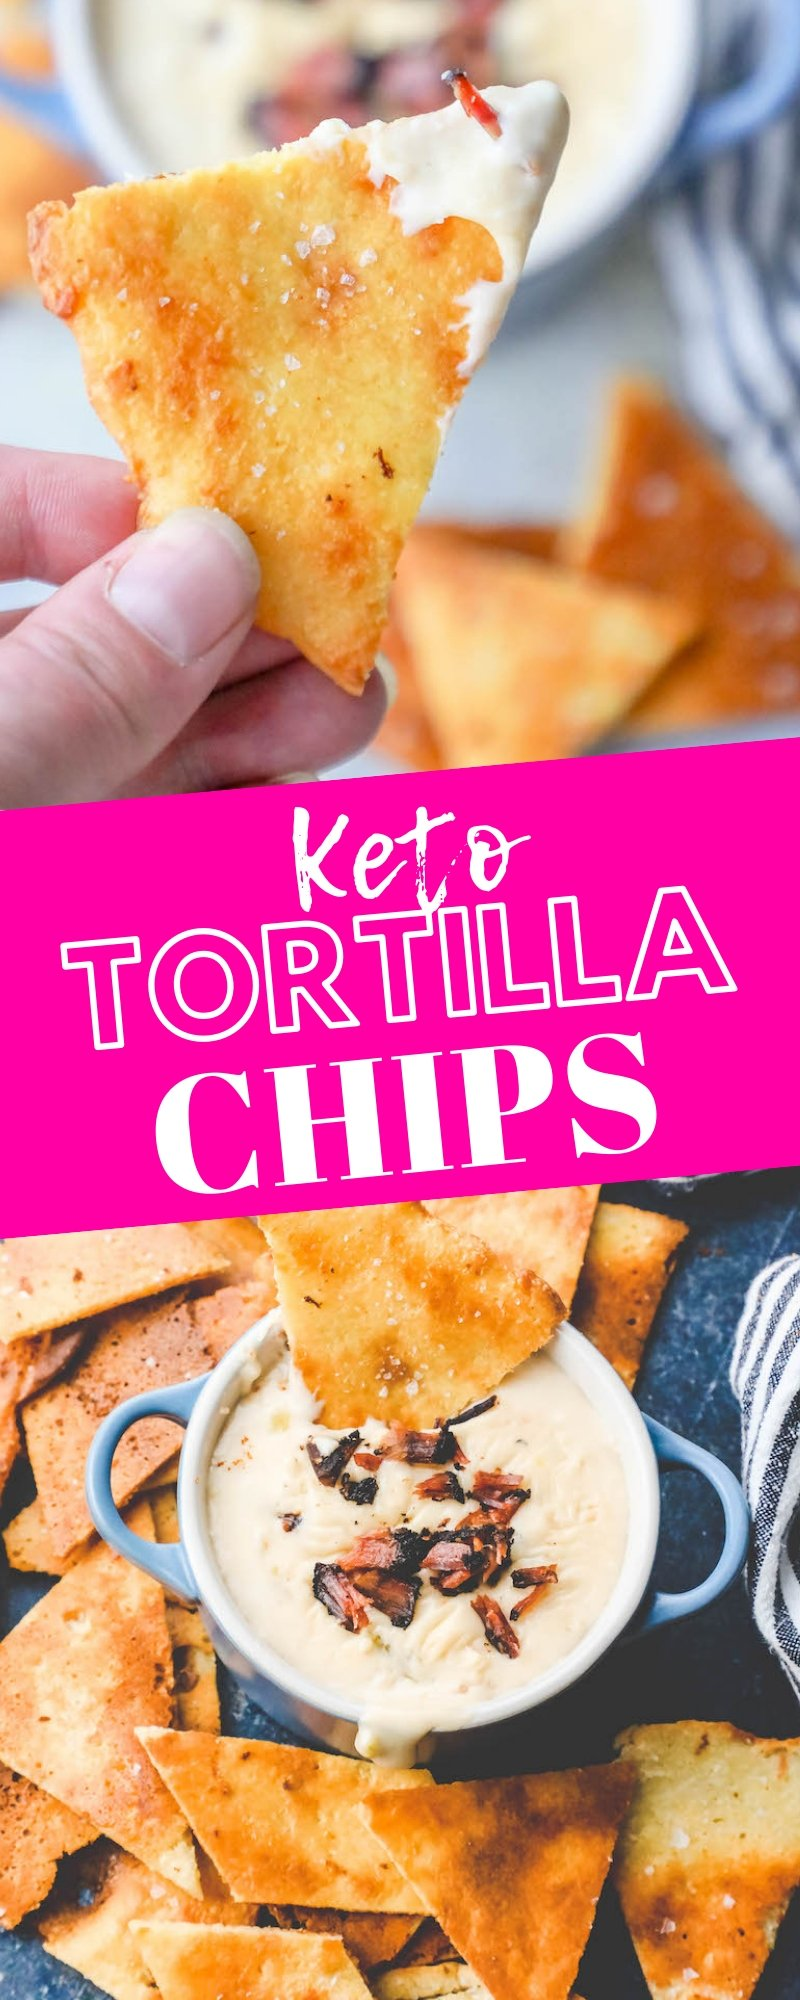 Easy Keto Tortilla Chips Recipe - Sweet Cs Designs